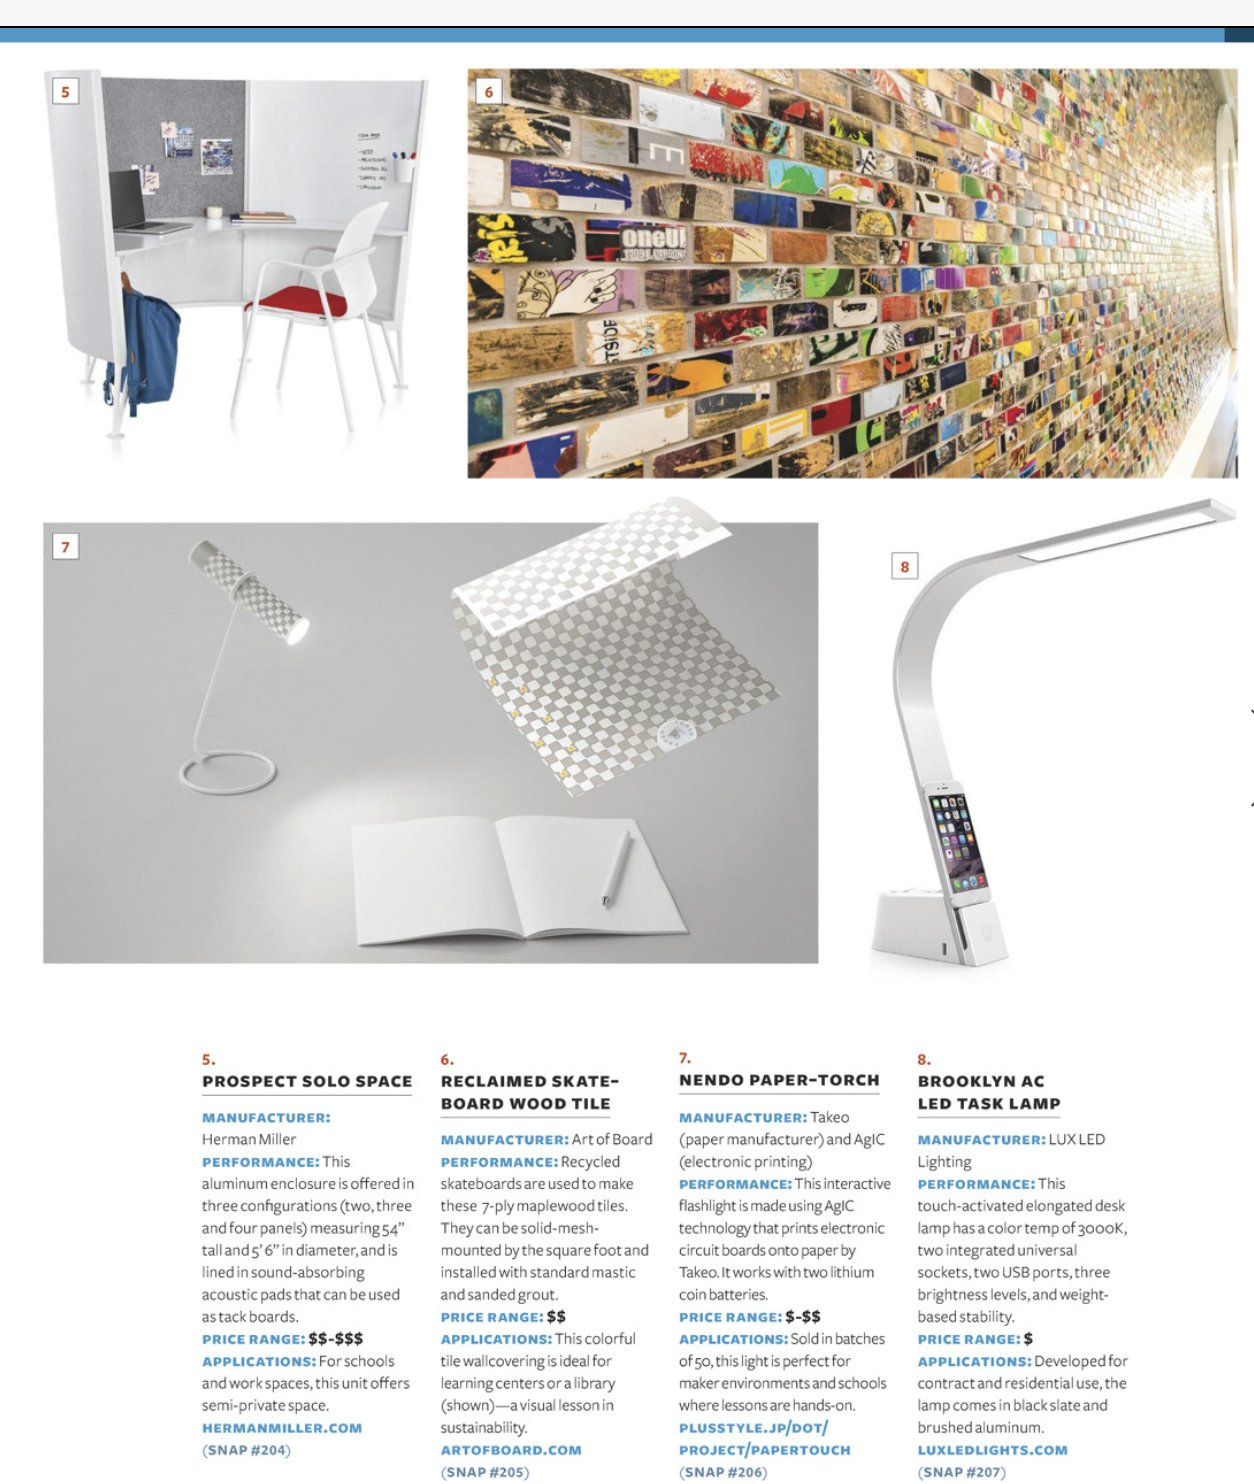 Art Of Board On Twitter Thanks Archrecord For Including Us In It Comes To Sustainable Product Design If Has A Circuit Your Snap Guide Artofboard Irideirecycle Tiles Https Tco Rusxosjtu5